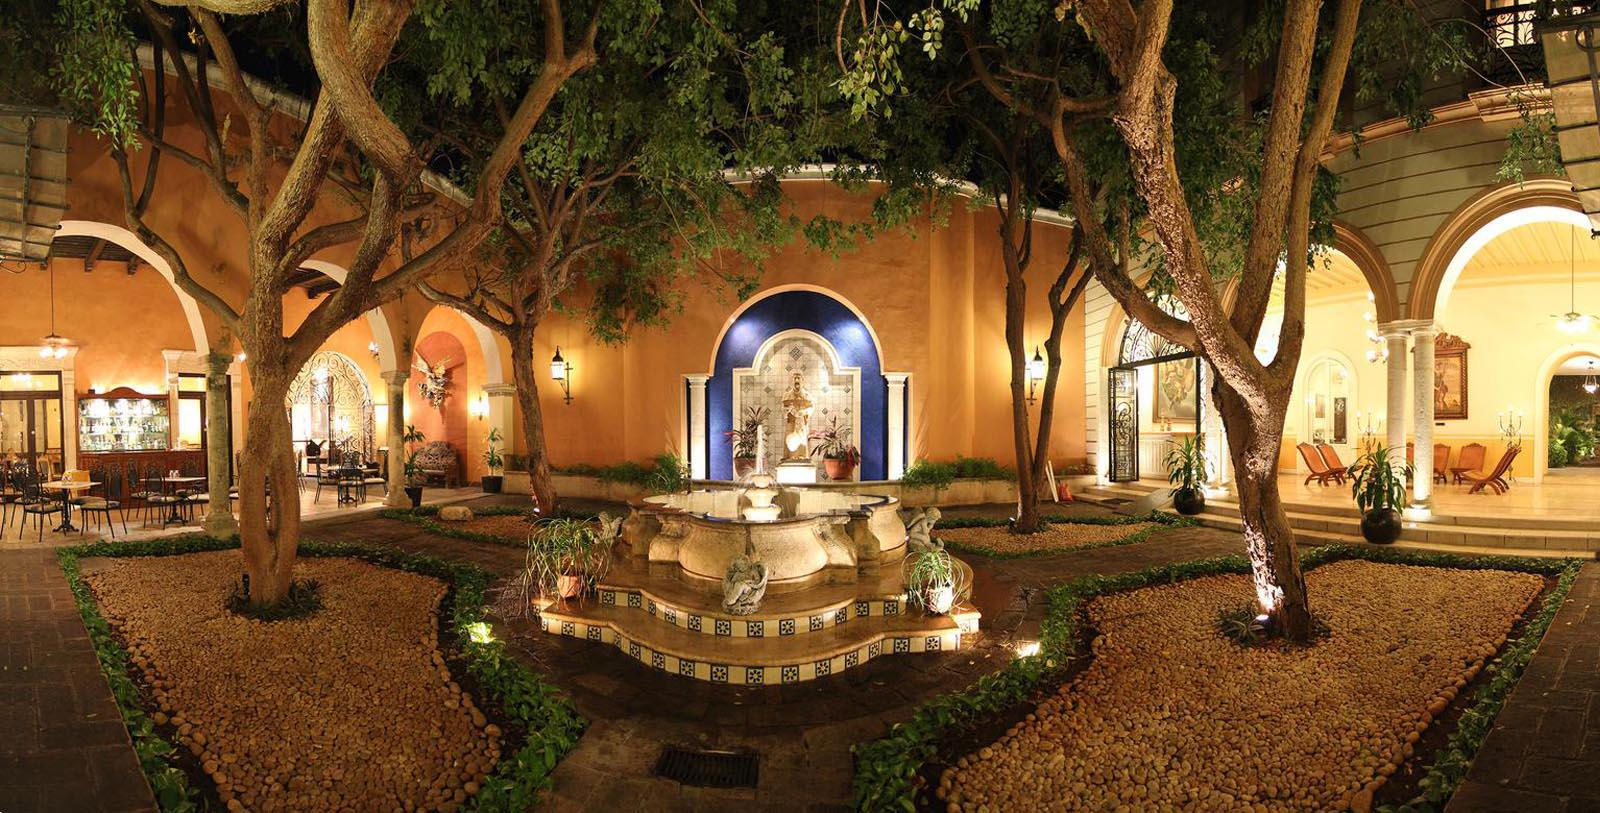 Image of Fountain and Outdoor Seating La Misión de Fray Diego, 1867, Member of Historic Hotels Worldwide, in Merida, Mexico, Overview